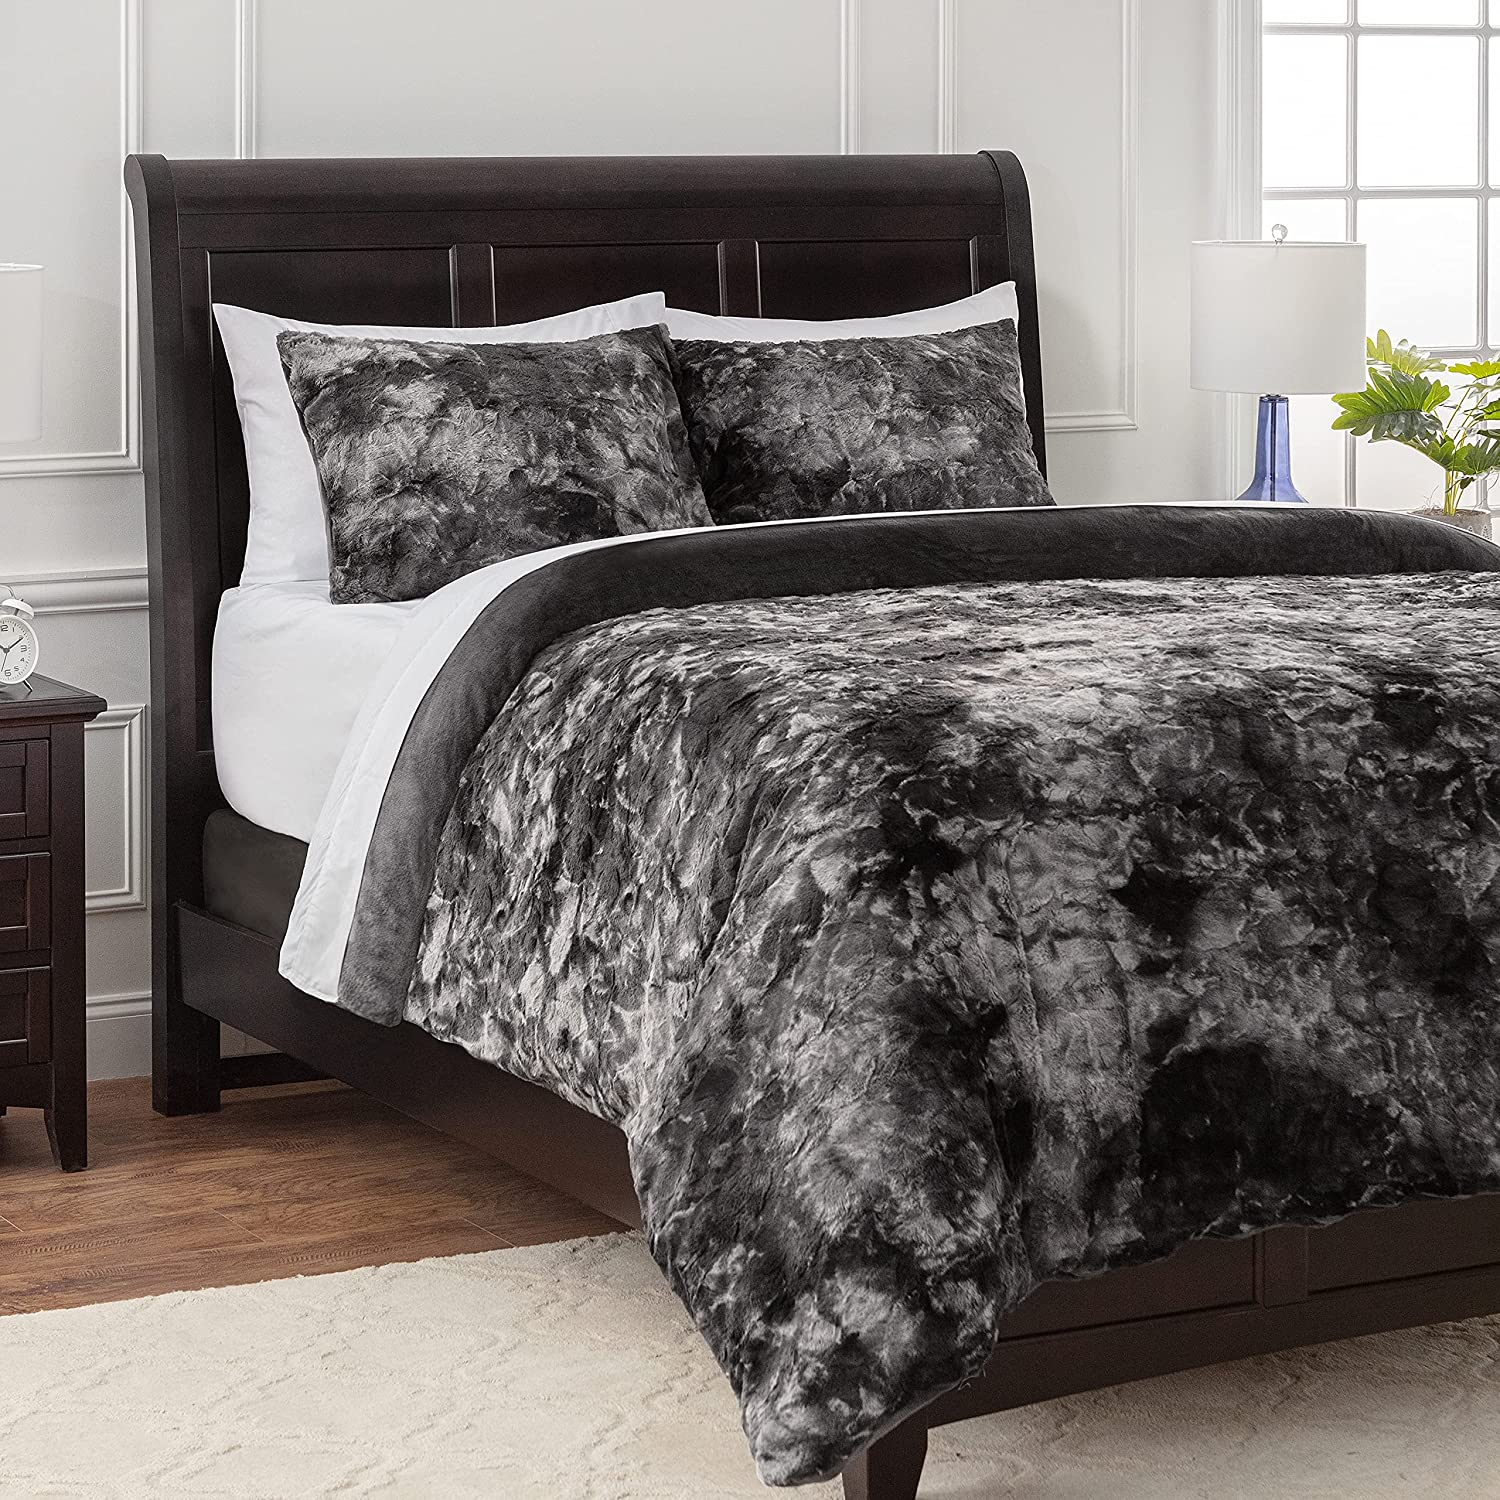 Chanasya 7-Piece King Max 71% Some reservation OFF Duvet Cover Set M Faux Wolf Bohemian - Fur